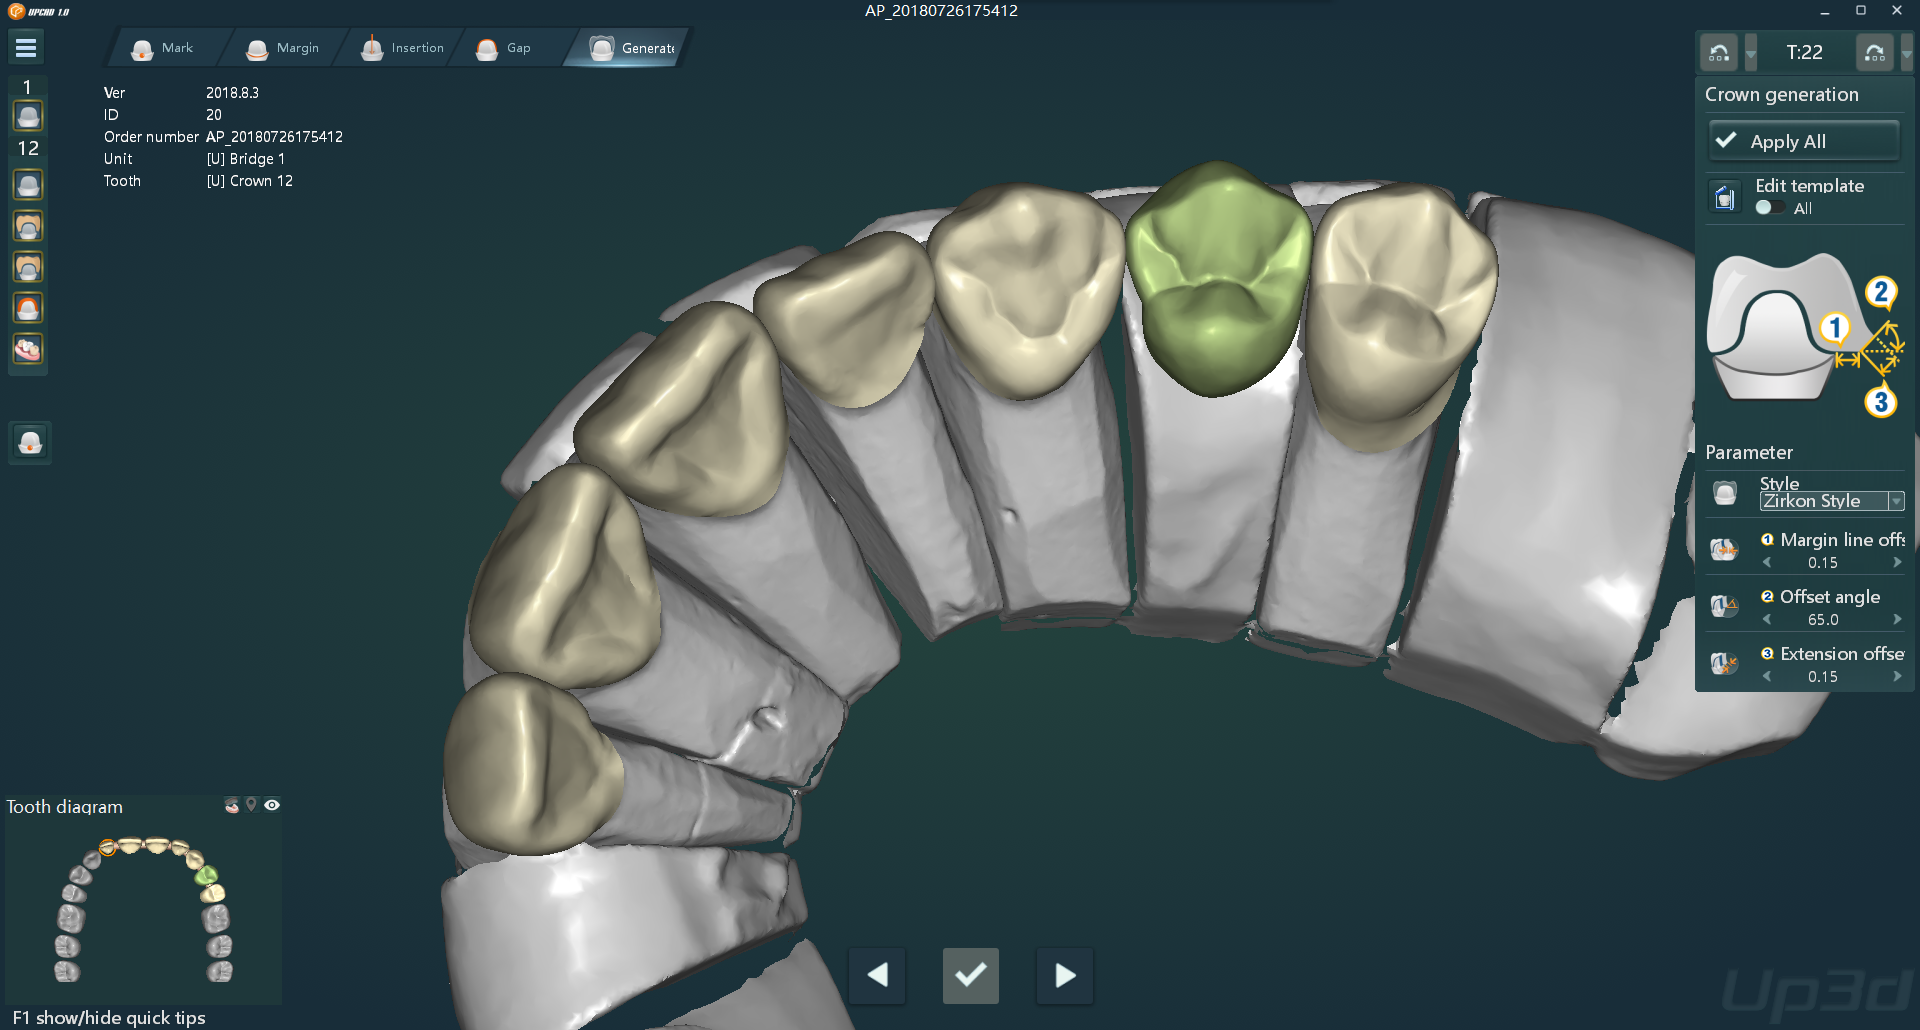 UPCAD-dental design software for crown and bridge version